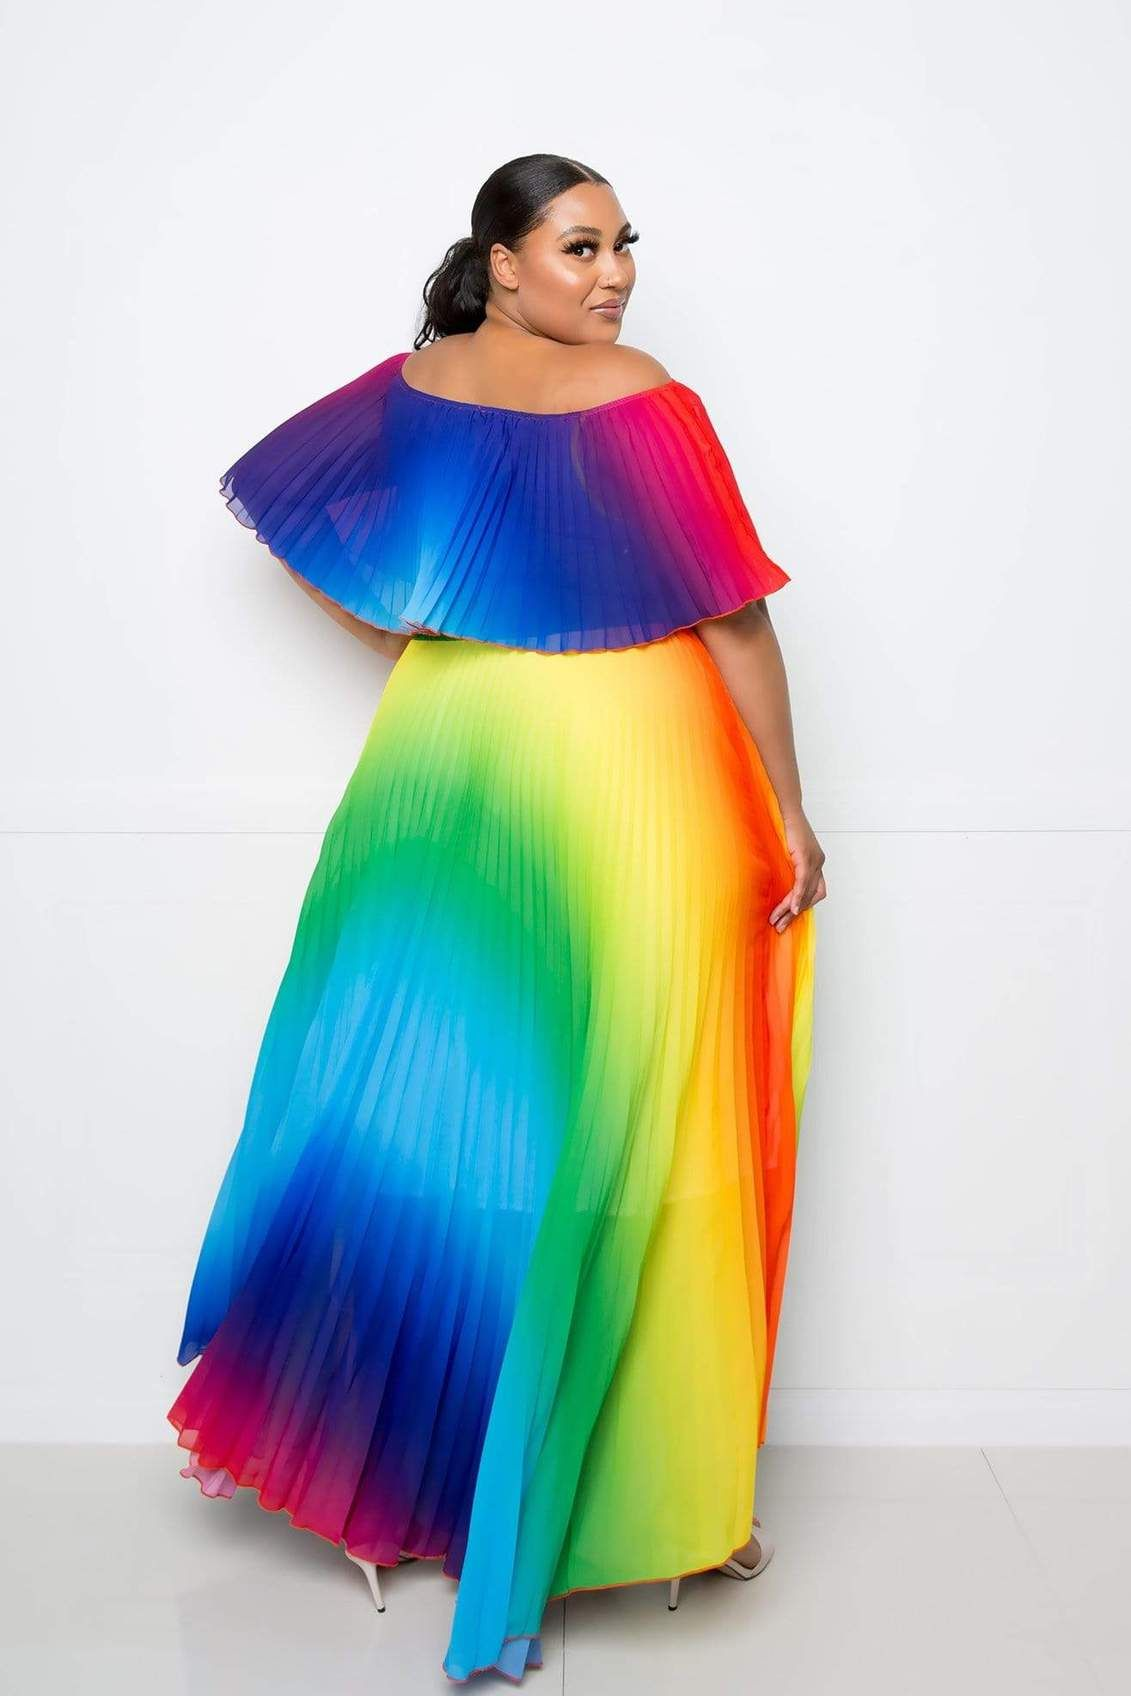 Off The Shoulder Rainbow Maxi Dress Coedition Maxi Dress Rainbow Dress Dresses [ 1696 x 1131 Pixel ]